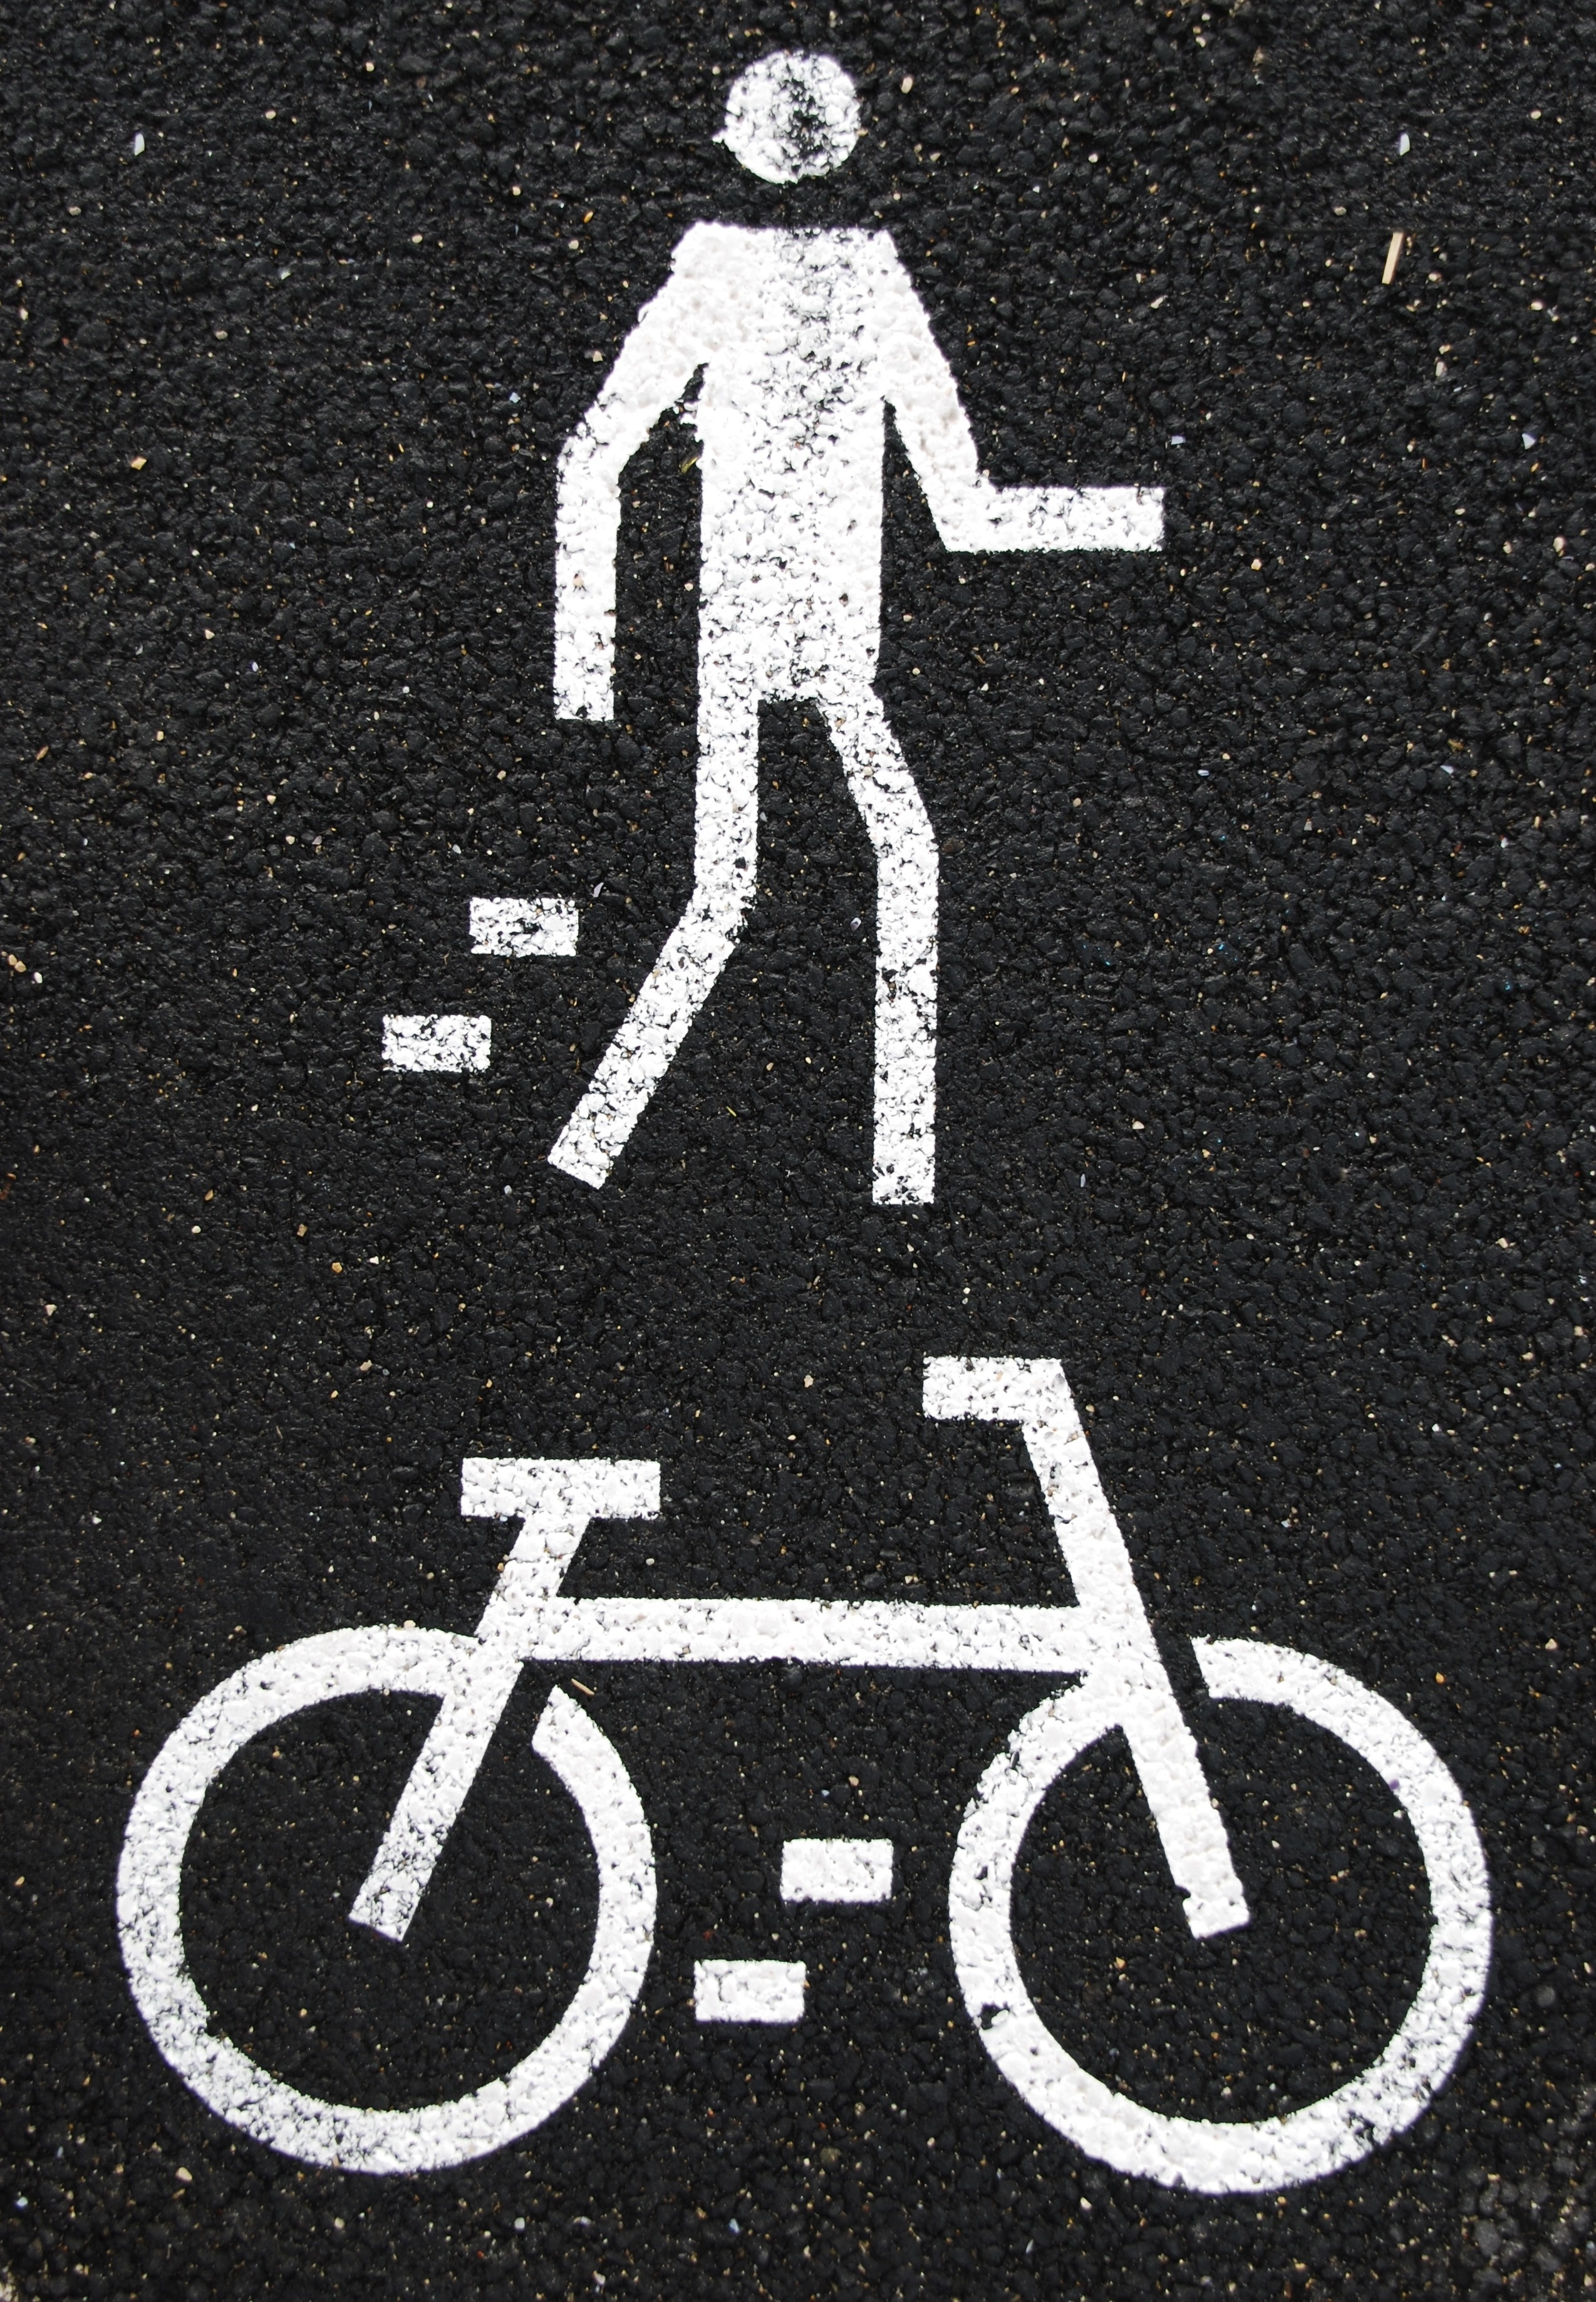 Pedestrian and Bicycle Sign in an Article About Complete Streets